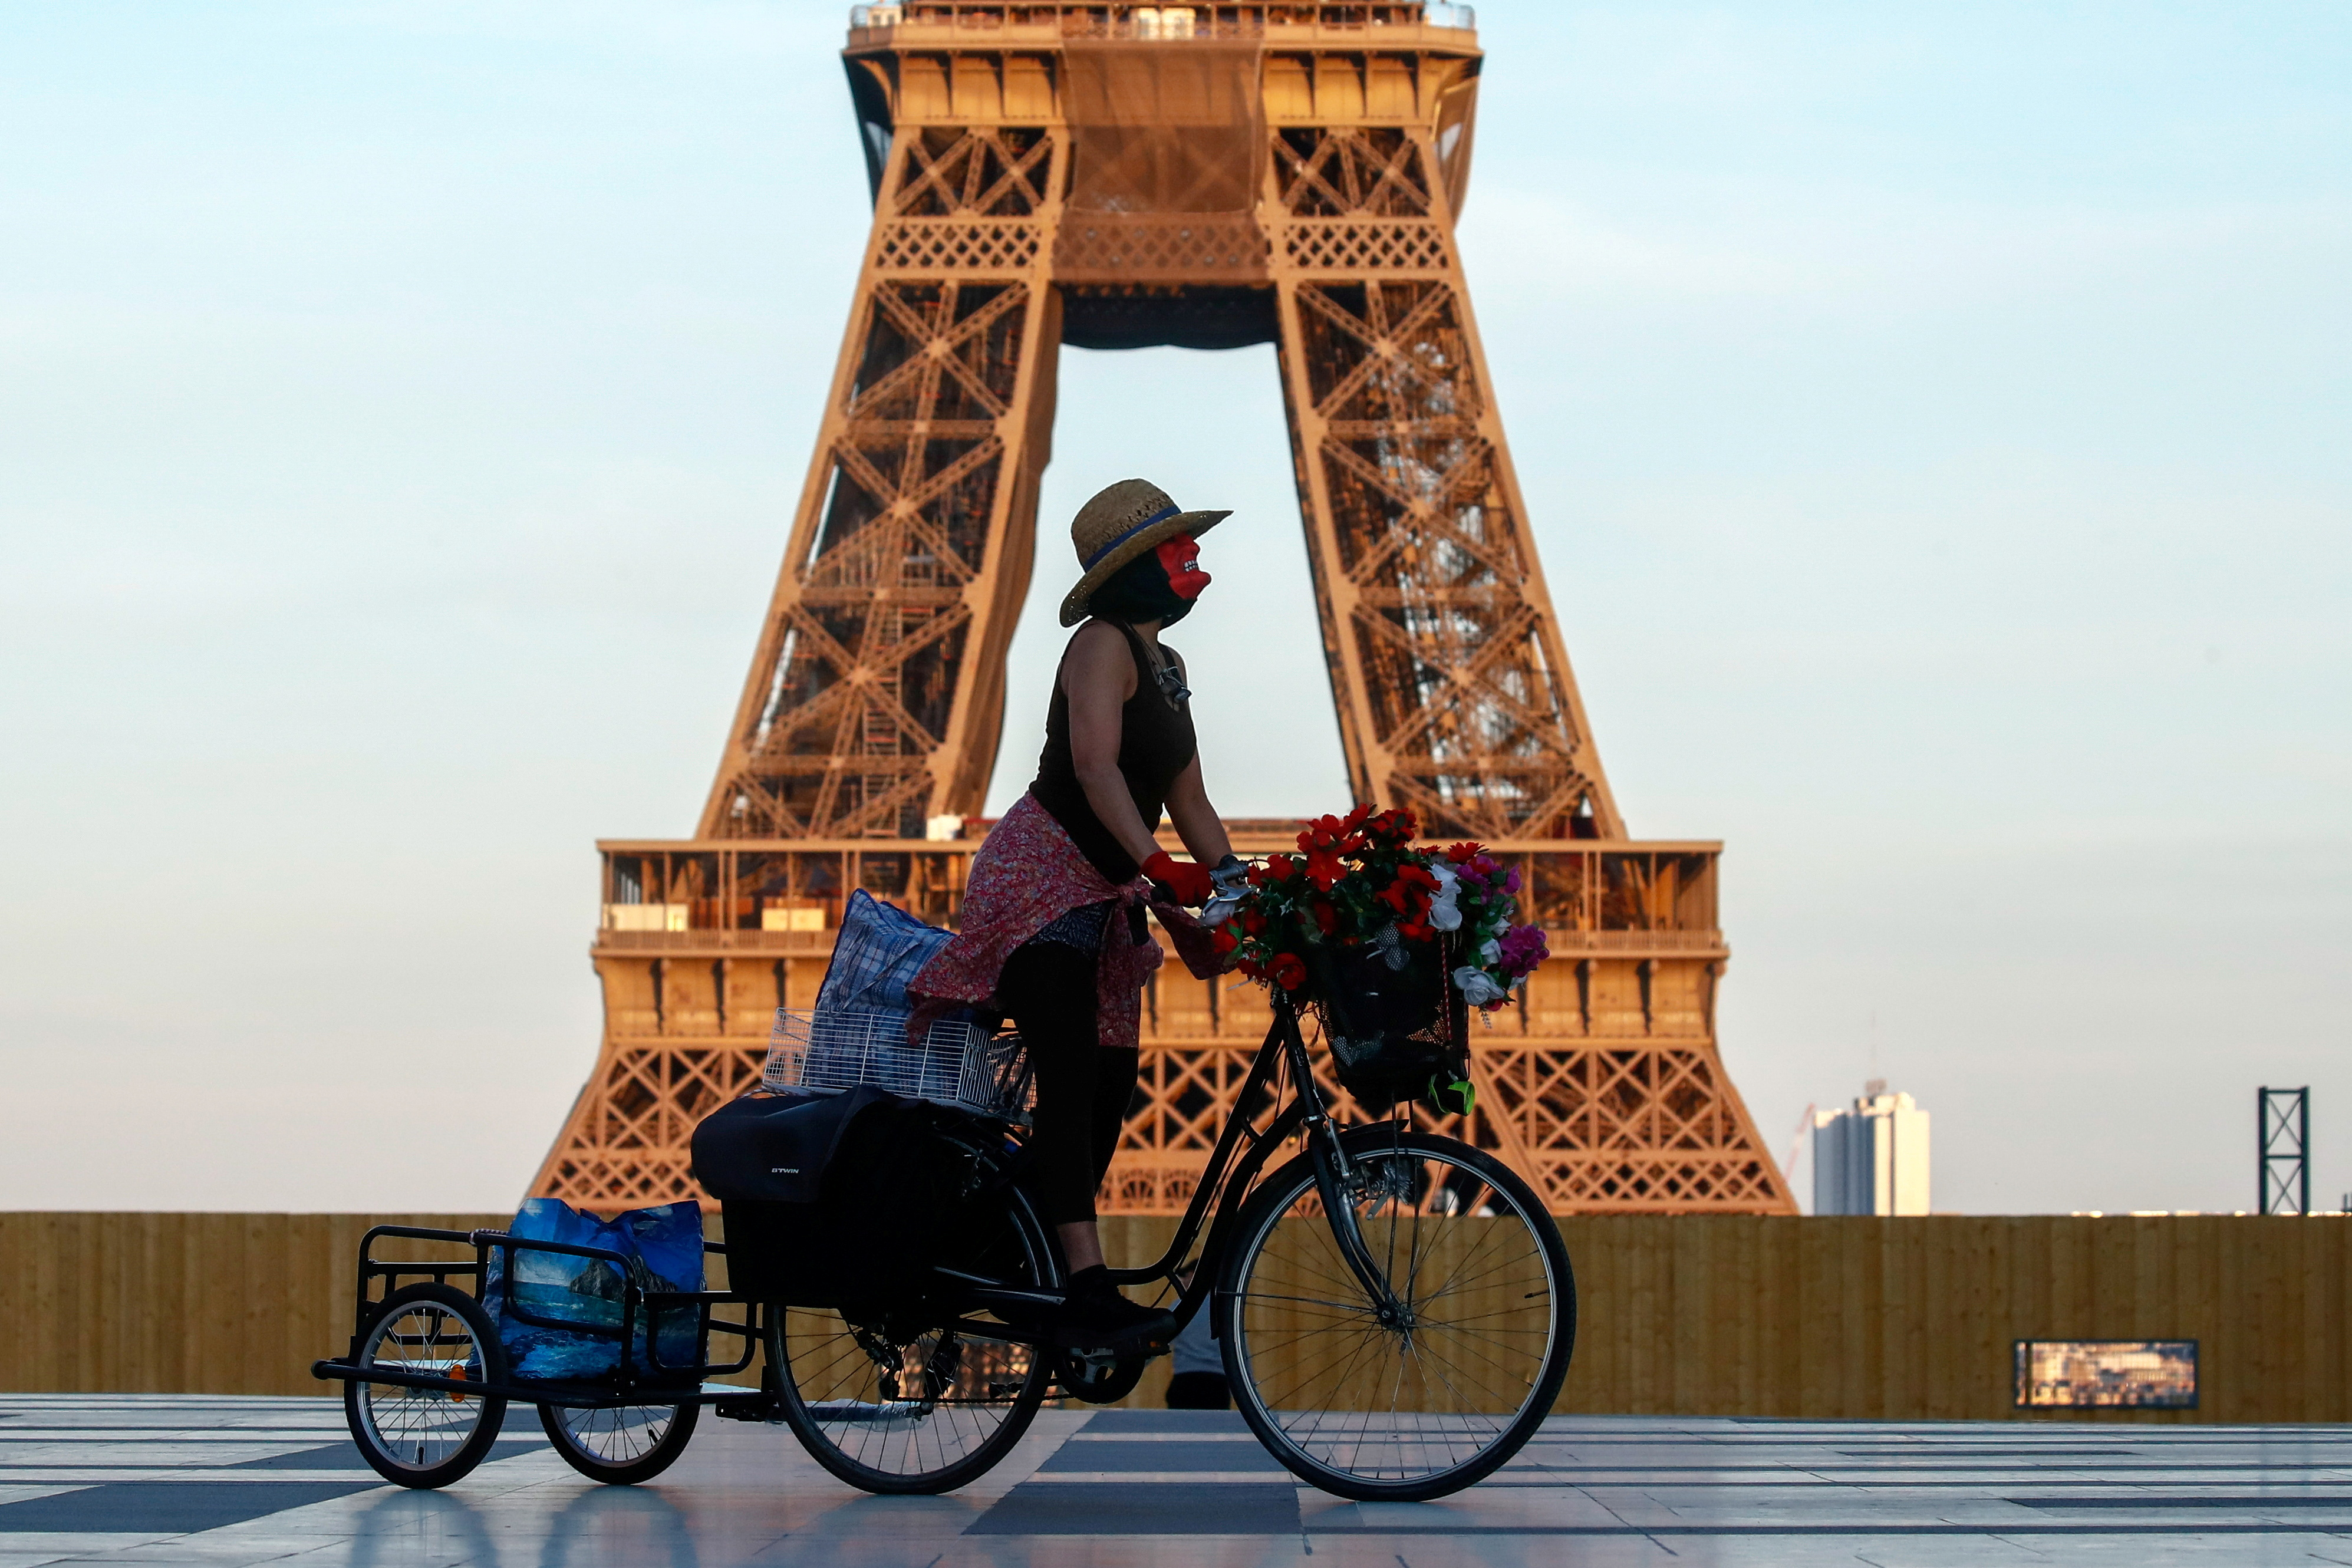 A woman, wearing a mask, rides her bicycle near the Eiffel tower at Trocadero square in Paris during the nationwide curfew, from 7 p.m to 6 a.m, due to tighter measures against the spread of coronavirus disease (COVID-19) in France, April 26, 2021. REUTERS/Gonzalo Fuentes/File Photo